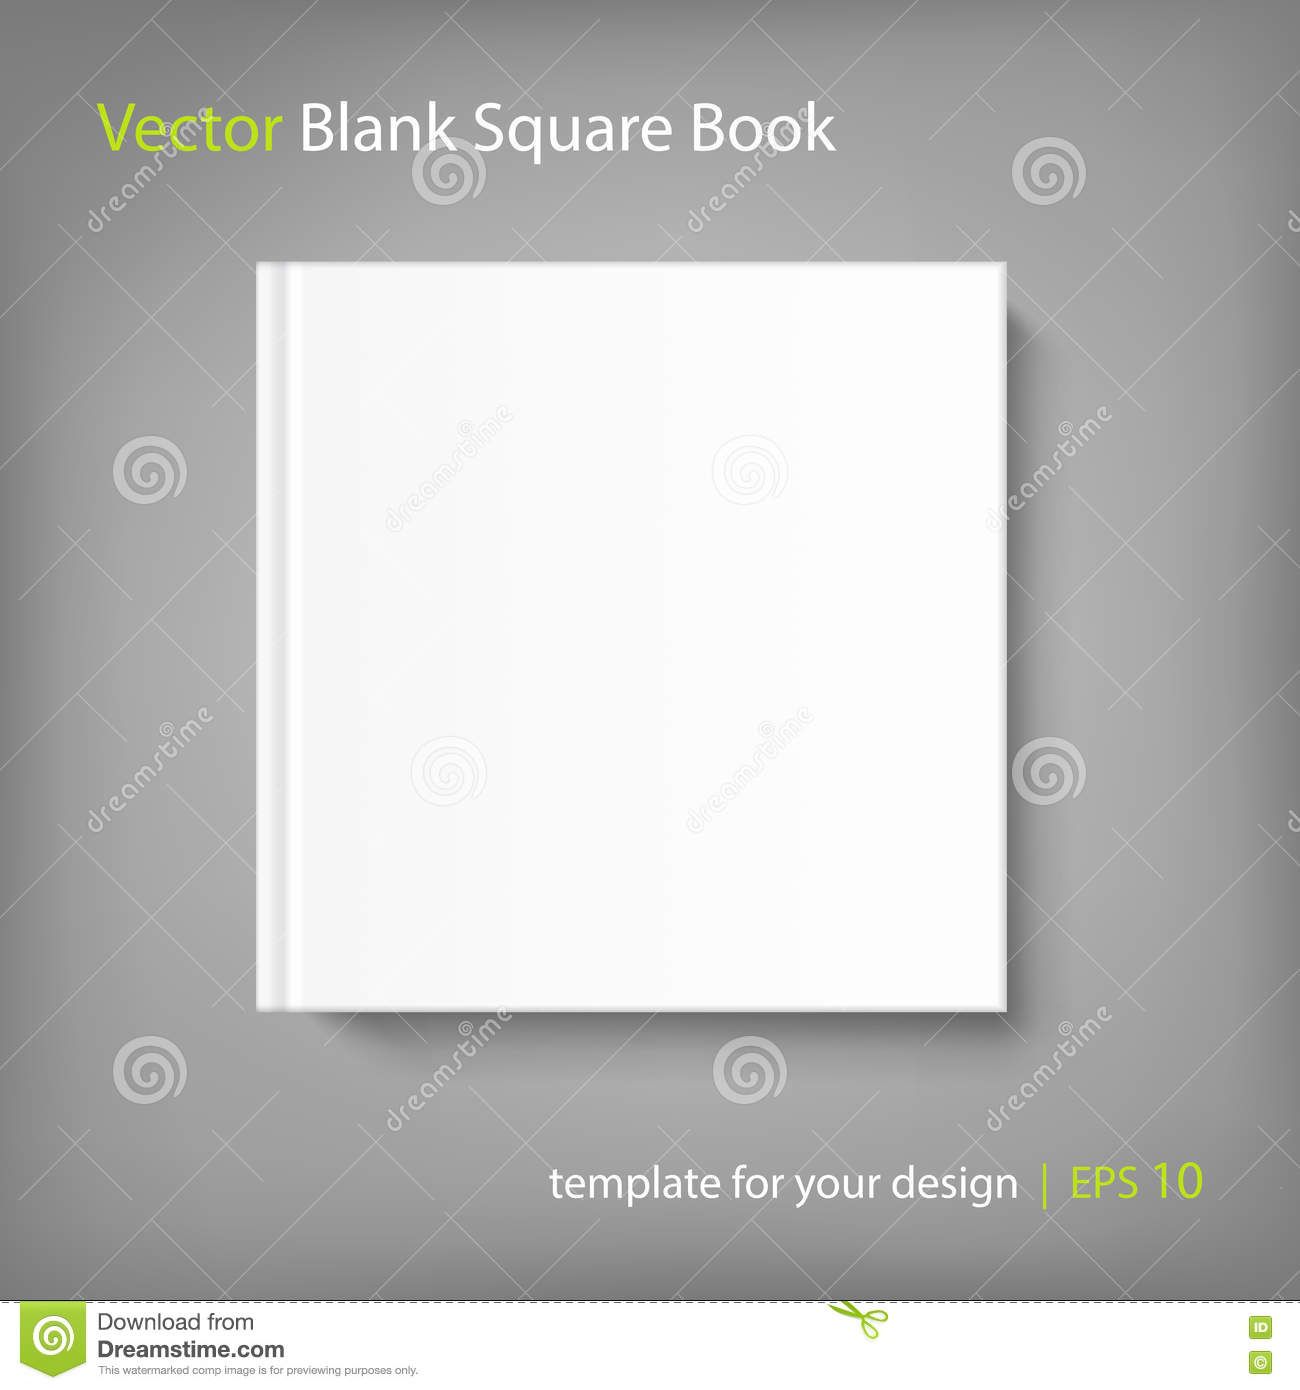 Blank Square Cover Book Template On Grey Background Stock